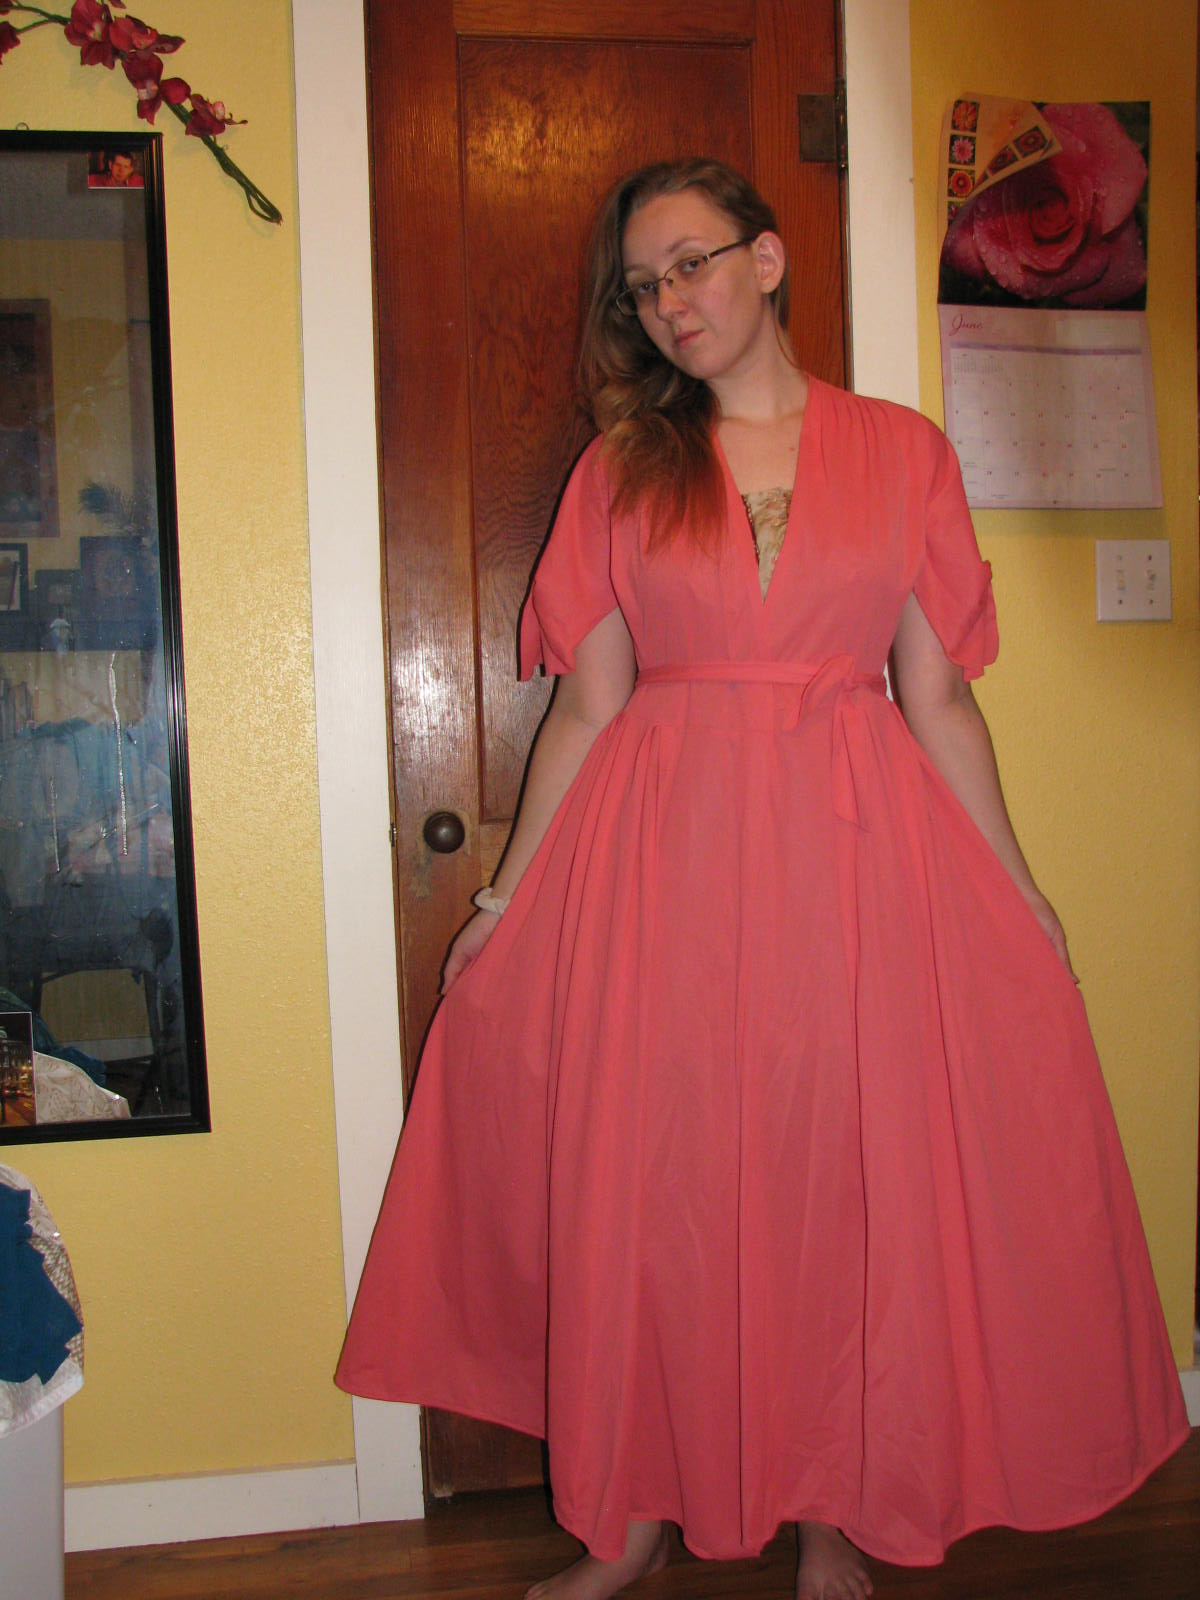 Gladness of Heart: Dressing Gown Refashion: Fix for Too Tight Sleeves